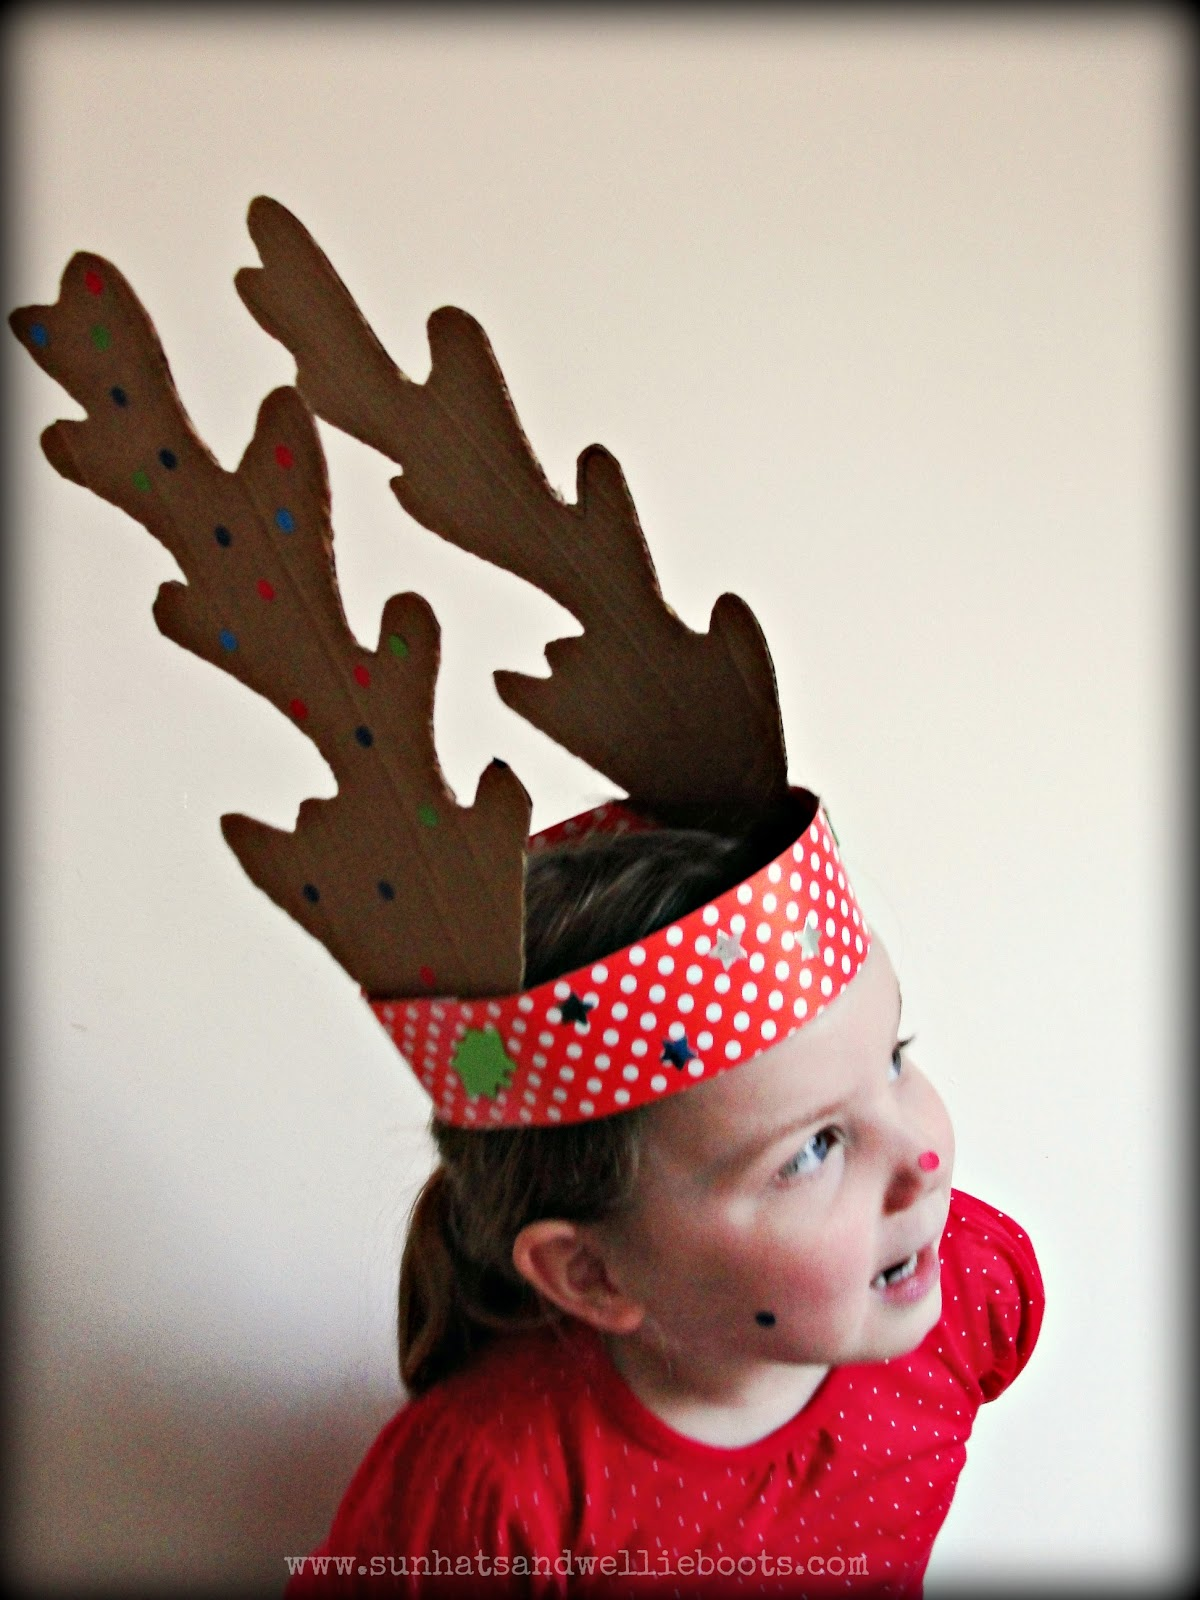 Sun Hats  Wellie Boots DIY Reindeer Antlers made from